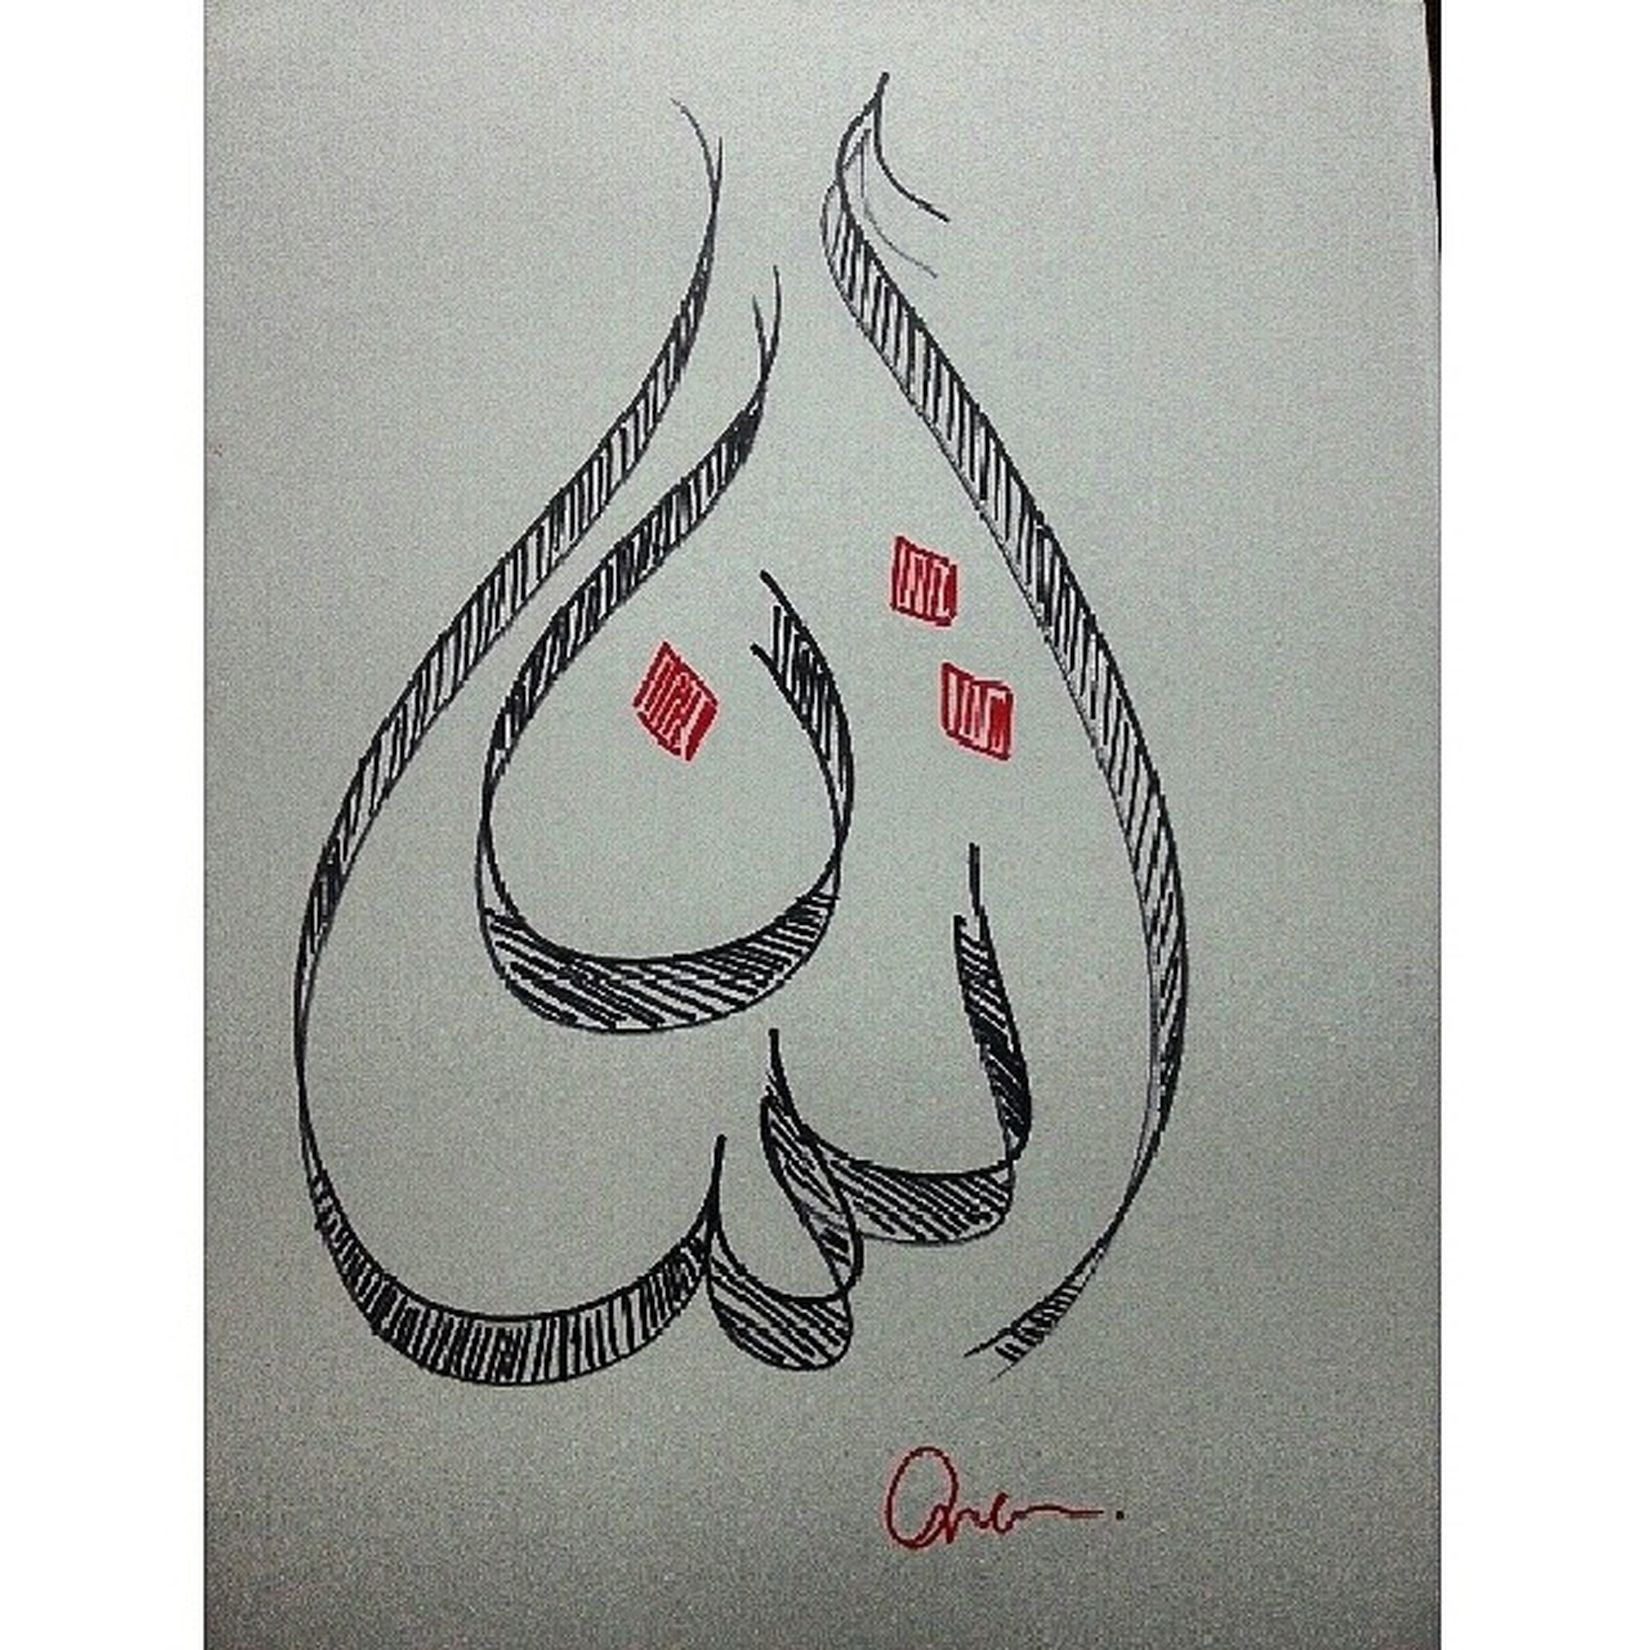 ? ArtWork Myname  Arabic Islamiccalligraphy art arabiccalligraphy iman red black markers ﺍﻳﻤﺎﻥ